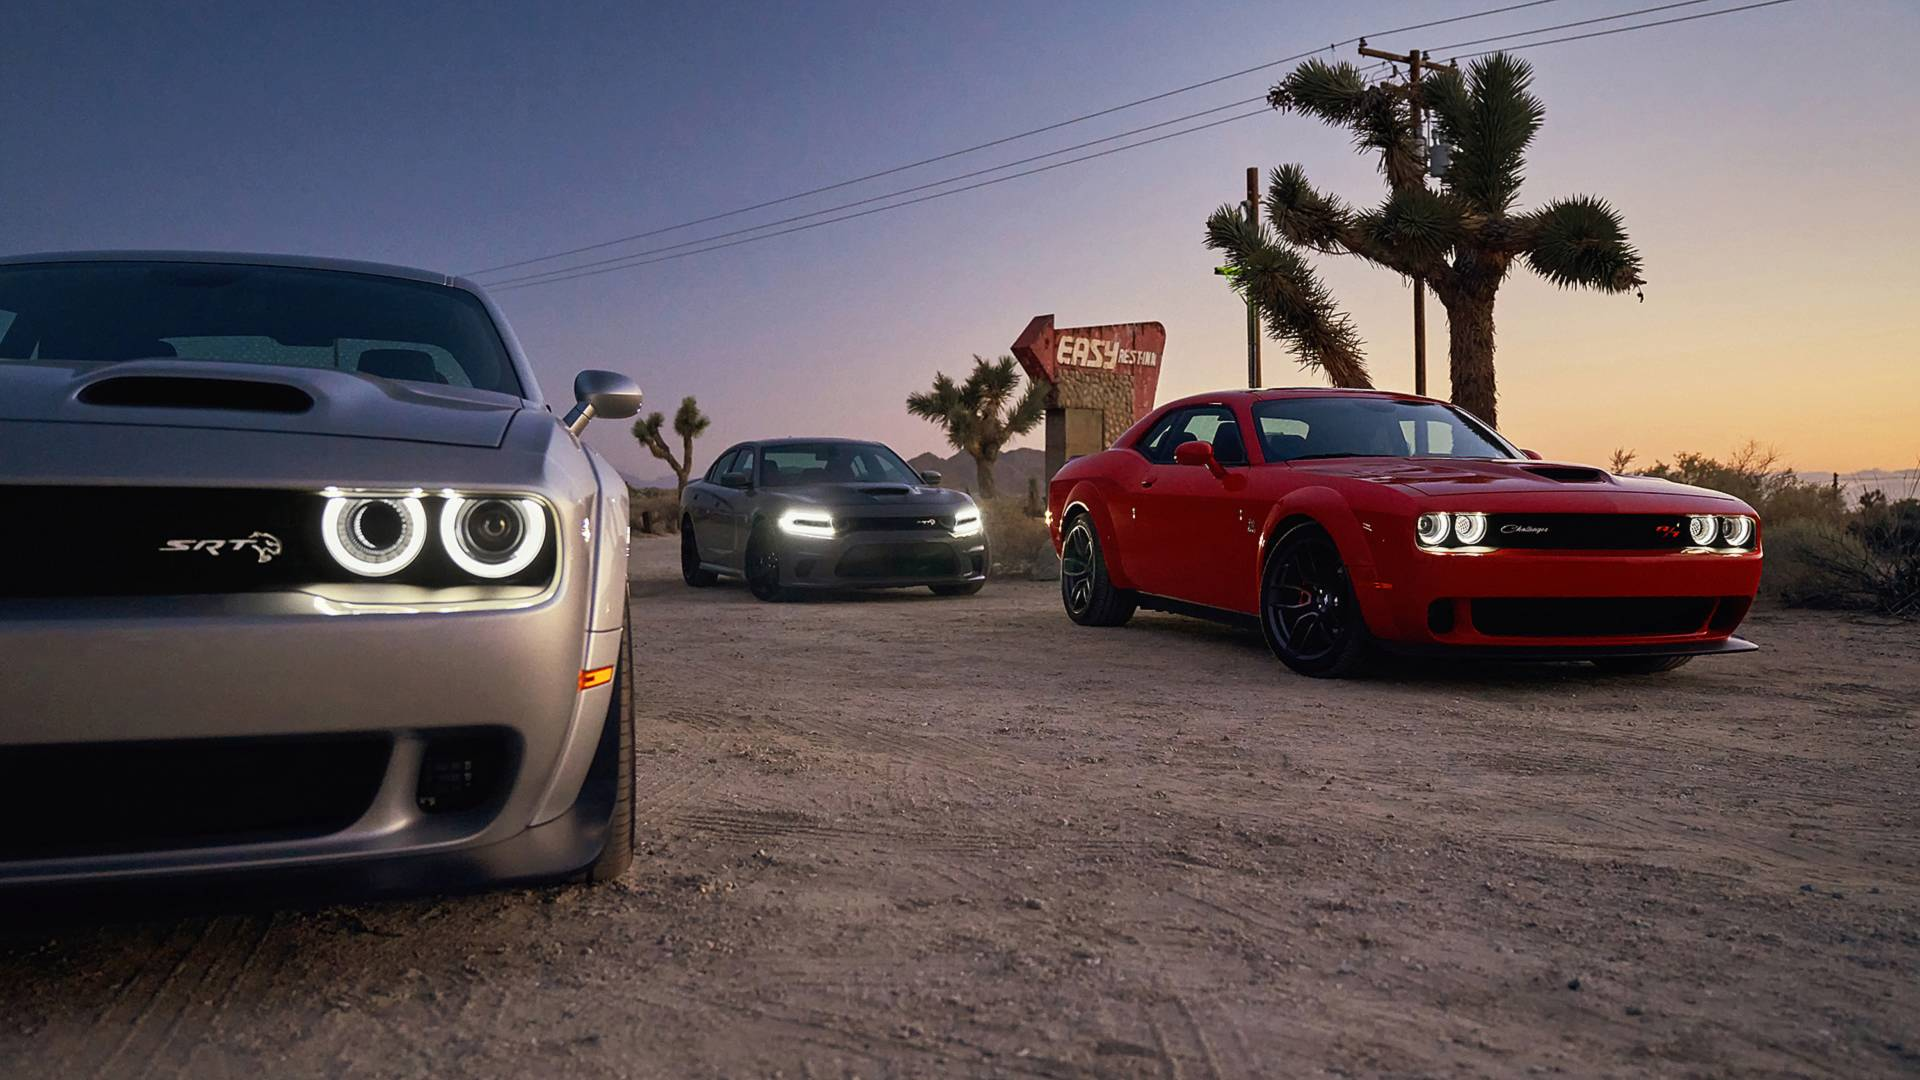 2019 Dodge Challenger SRT Hellcat Redeye Pricing Announced, Starts